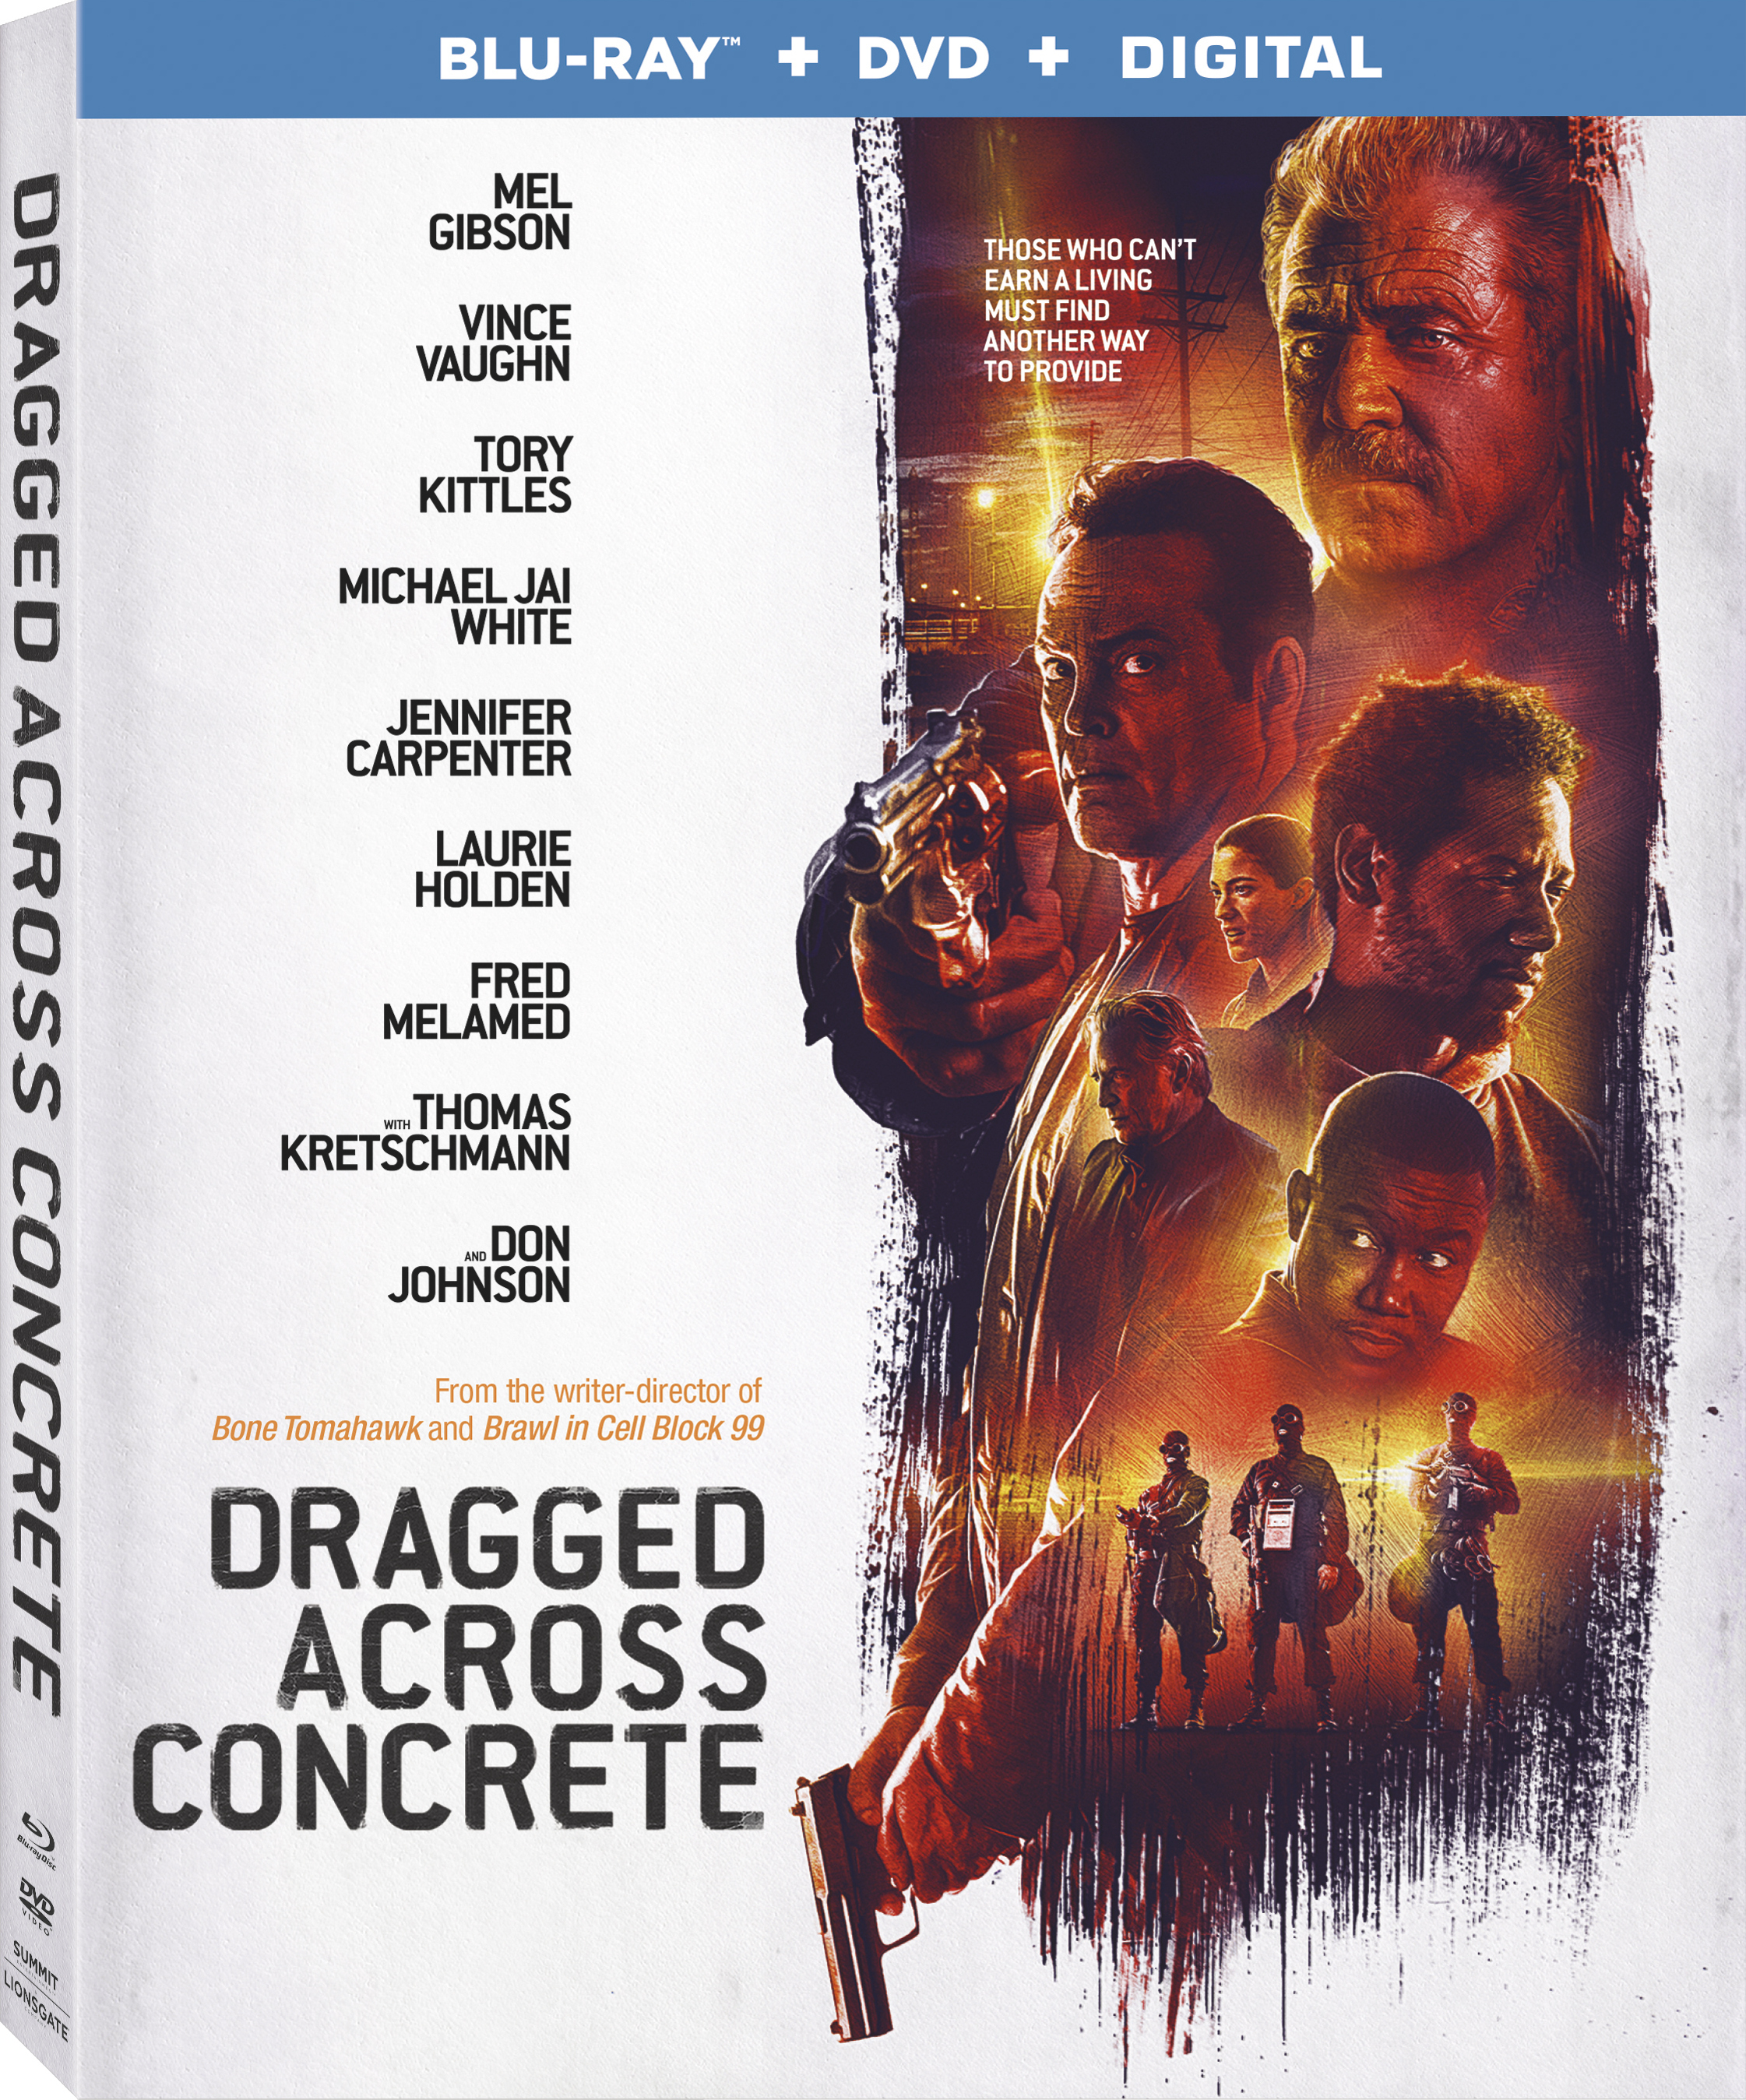 Dragged Across Concrete (Blu-ray)(Region A)(Pre-order / Apr 30)